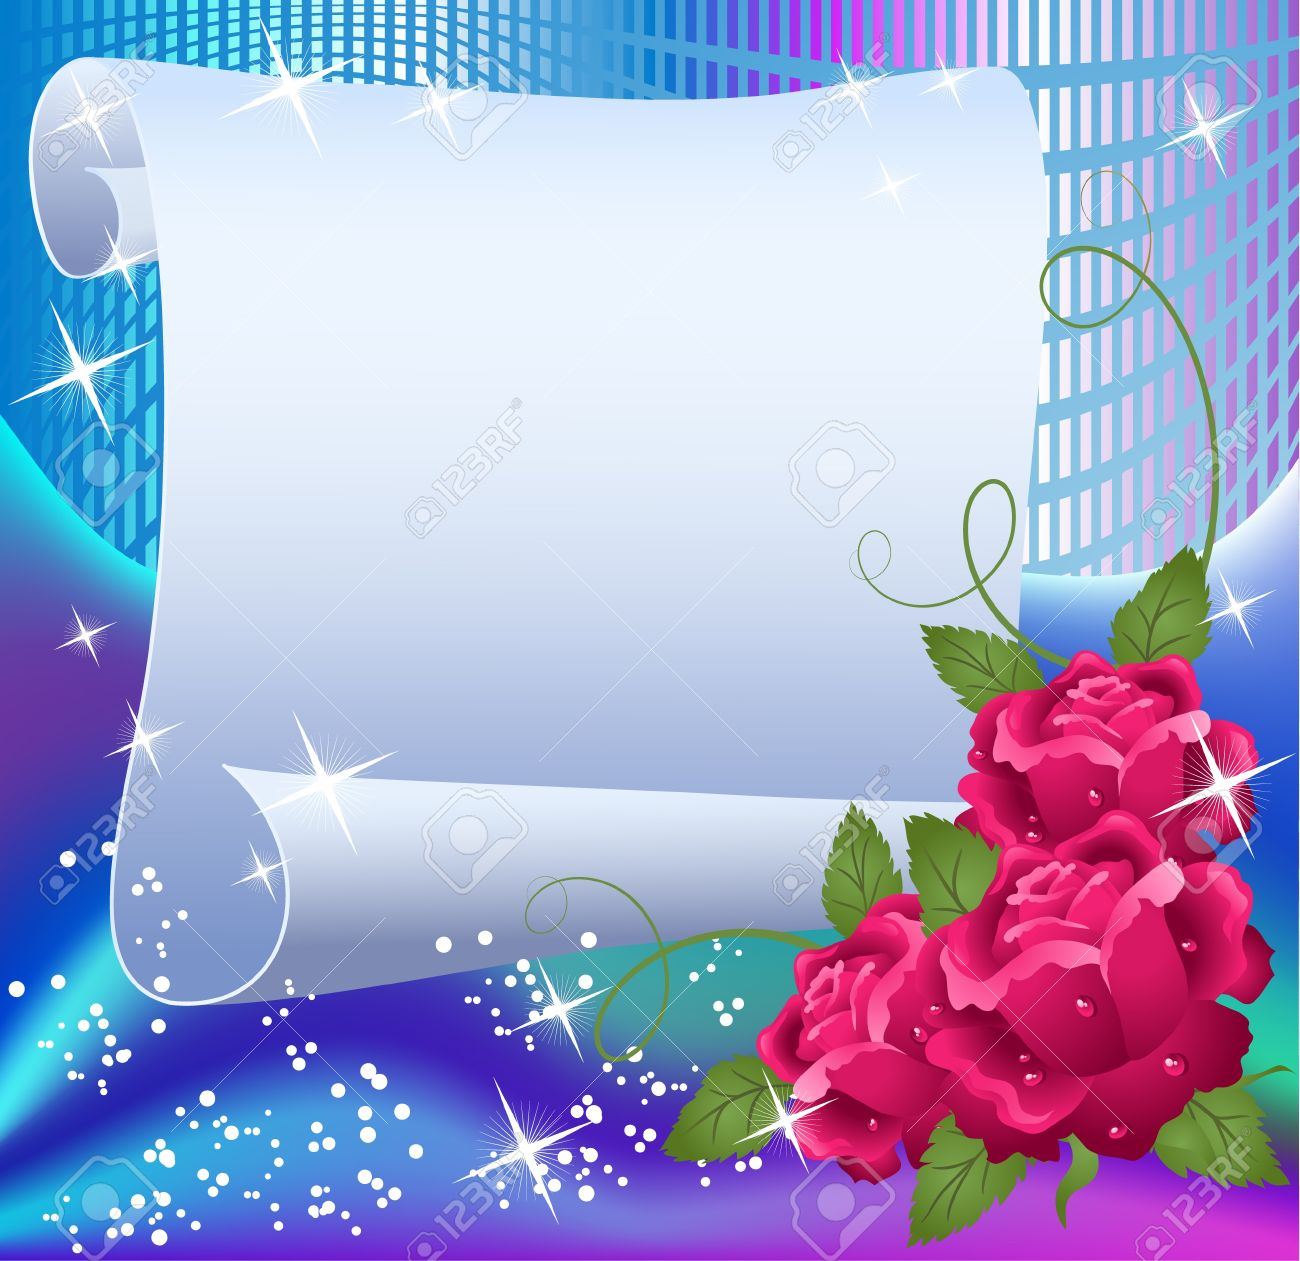 Magic background with paper, roses and a place for text - 13781924